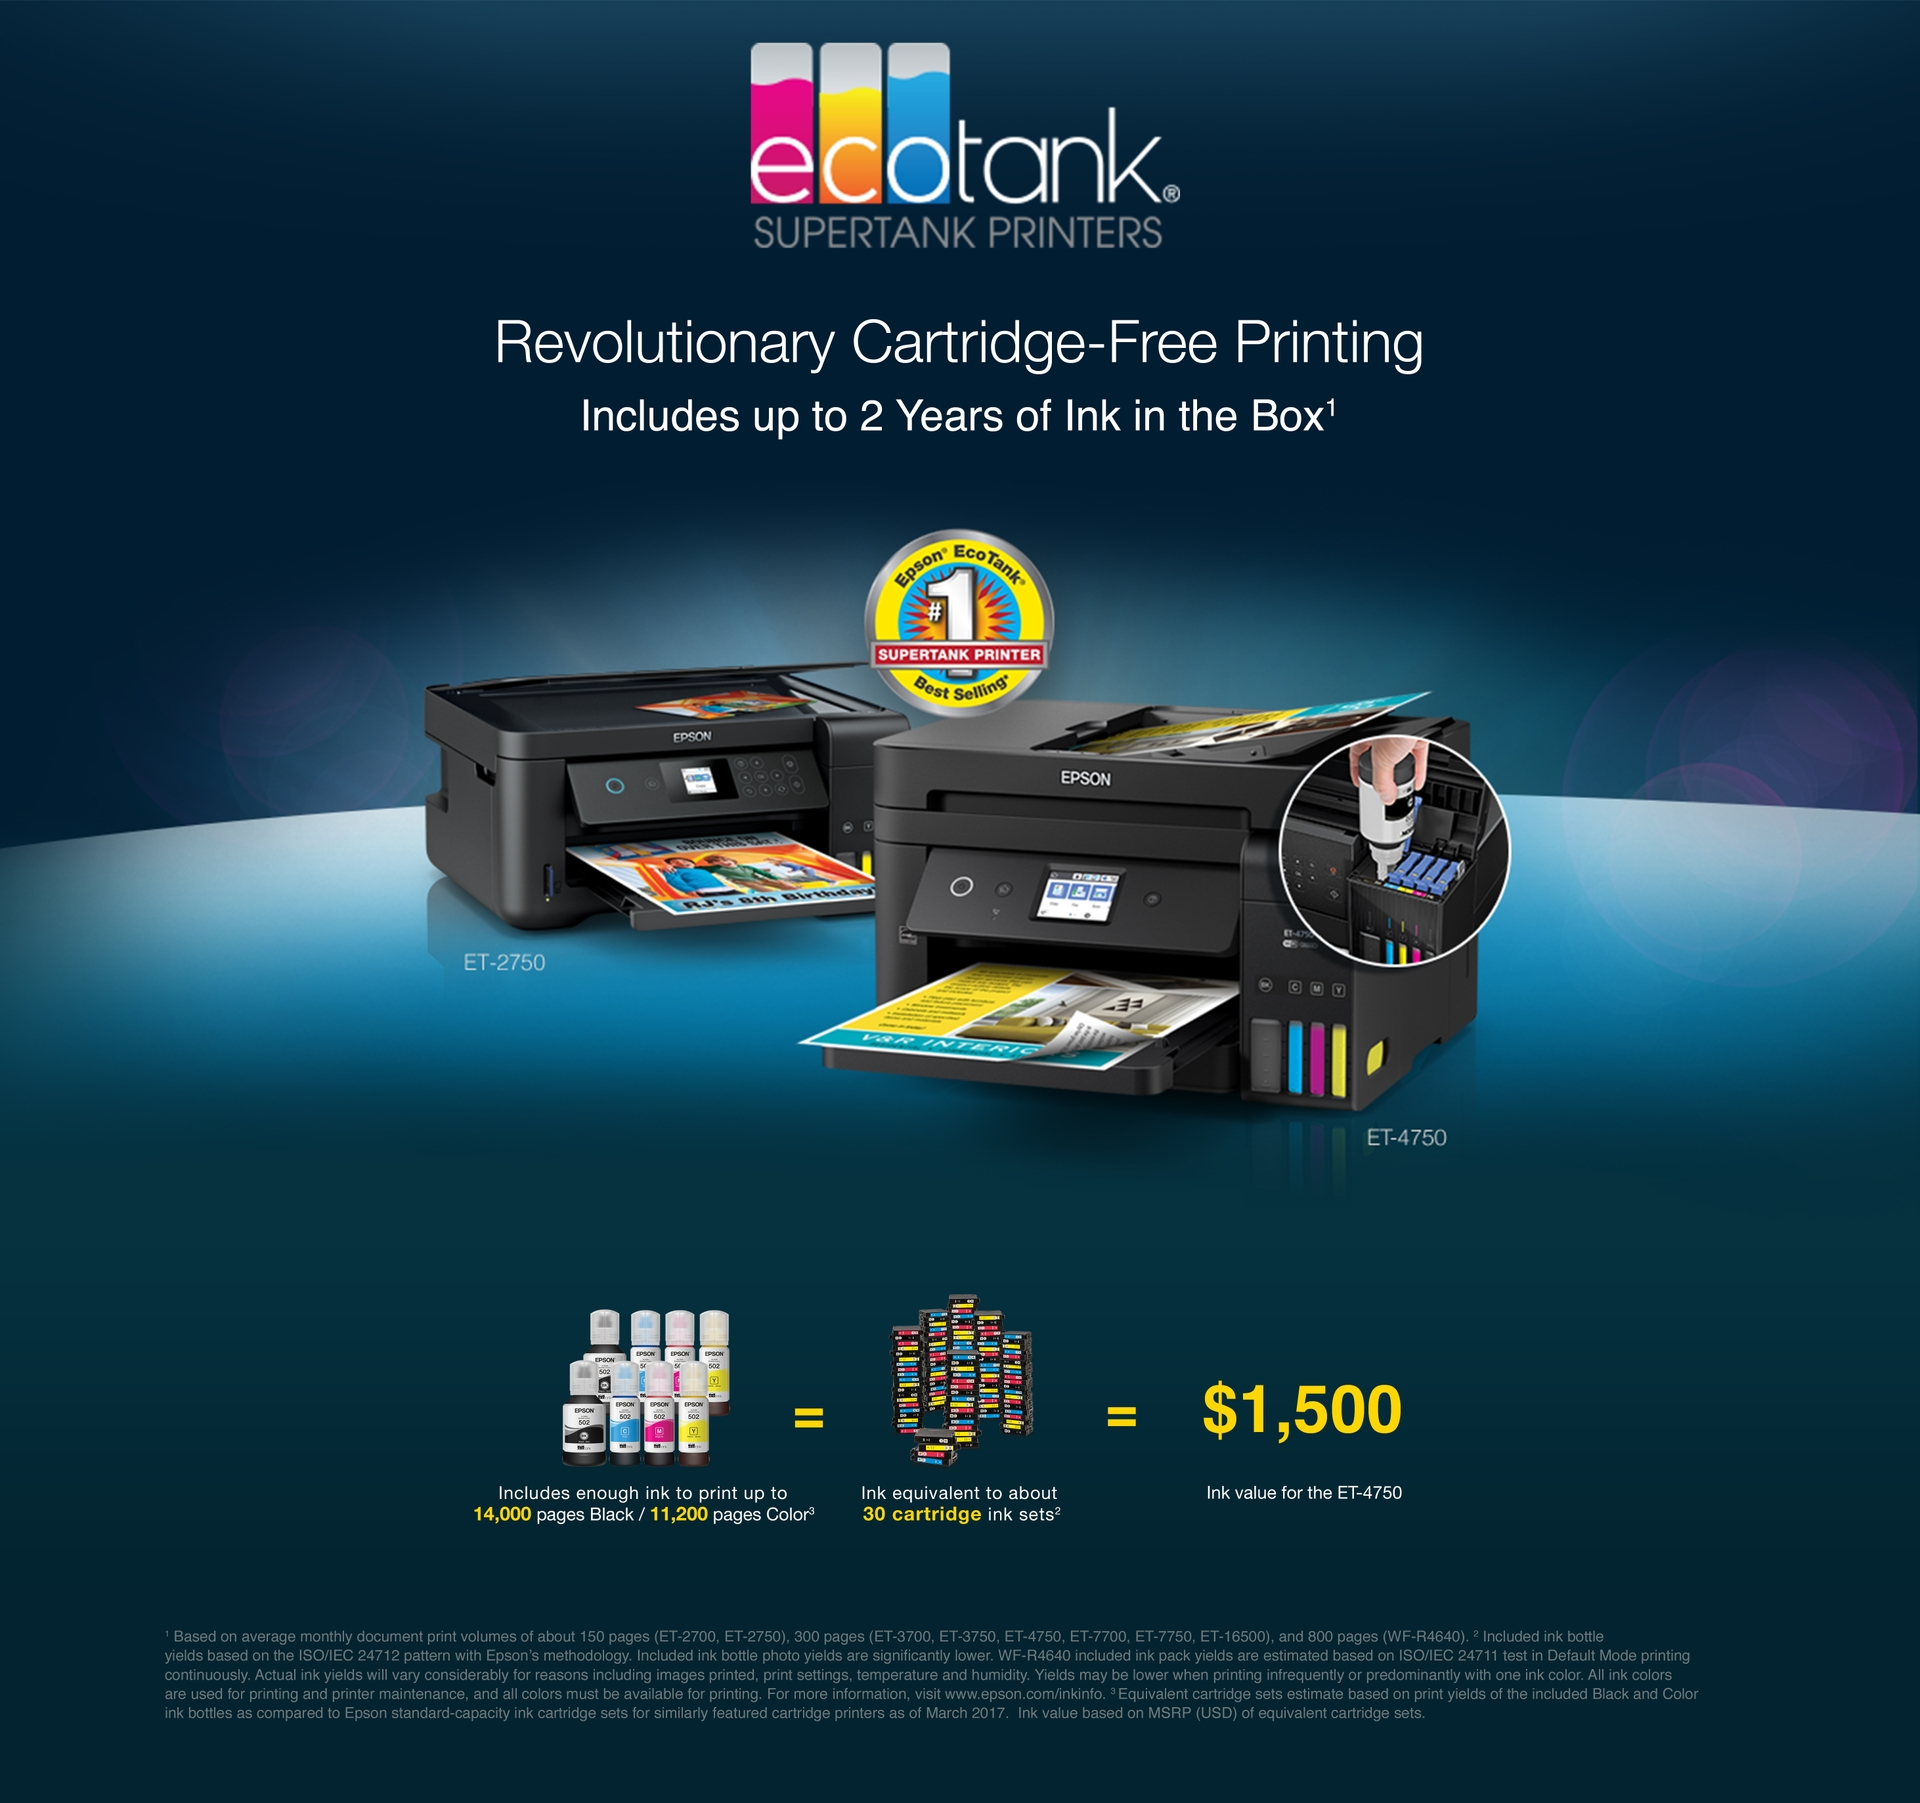 EcoTank - Revolutionary Cartridge-Free Printing